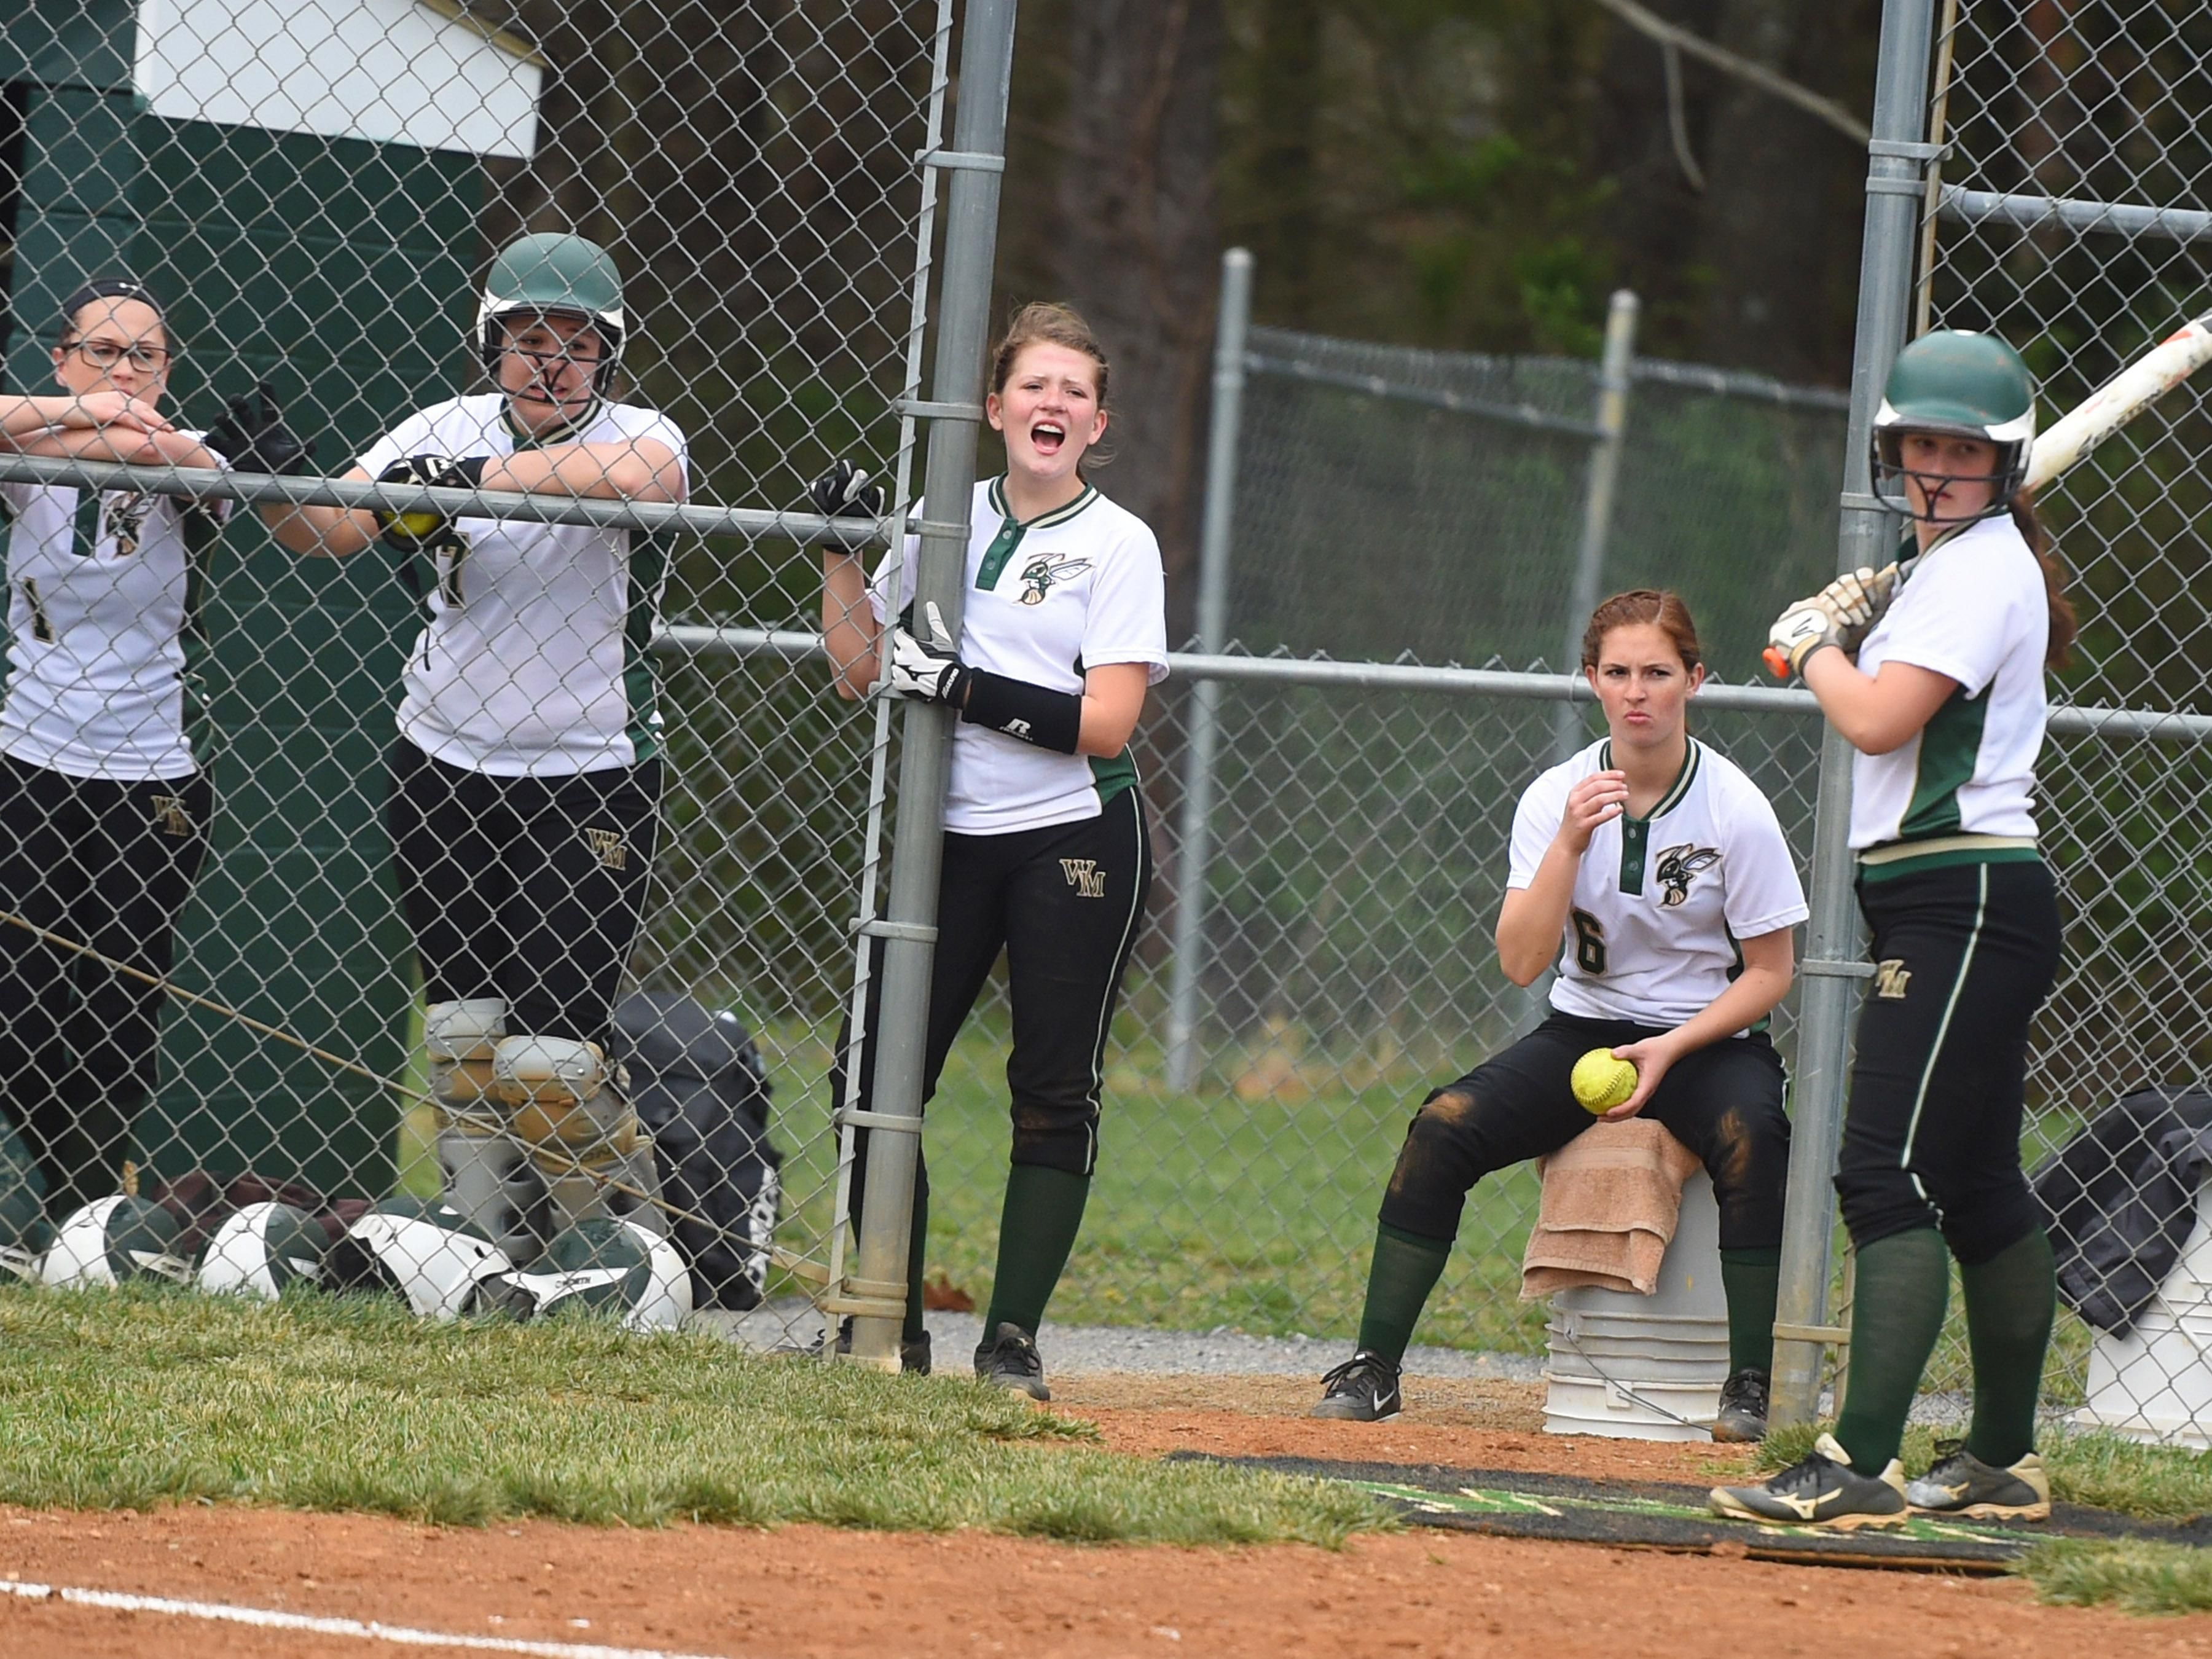 Wilson Memorial's Emma Peery (center) joins teammates in cheering on their batter in the first inning during a softball game played in Fishersville on Friday, April 1, 2016.